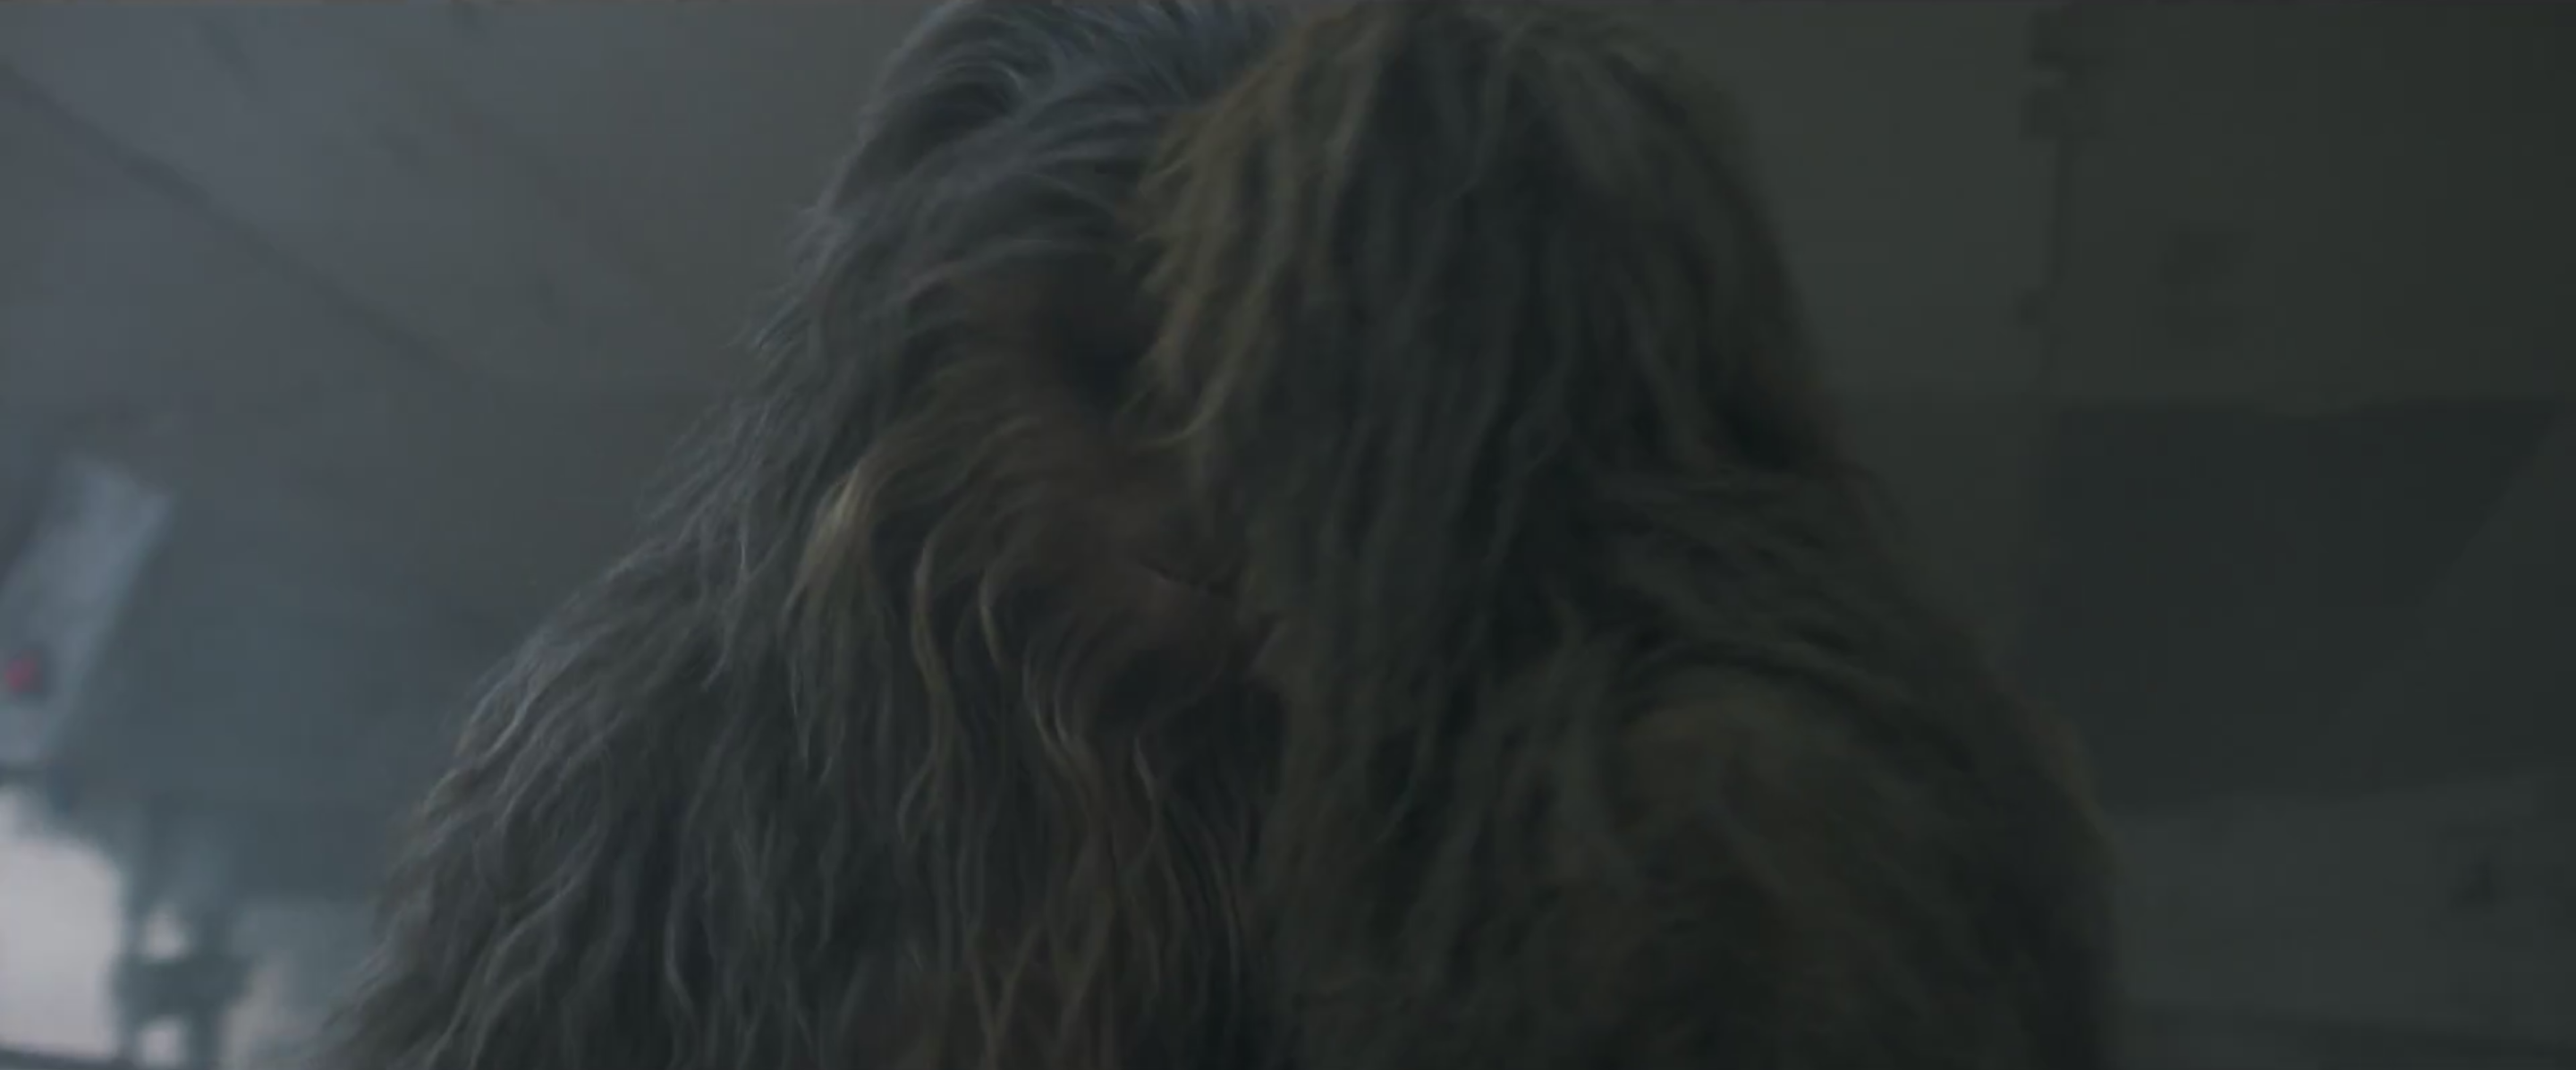 Chewbacca Solo A Star Wars Story